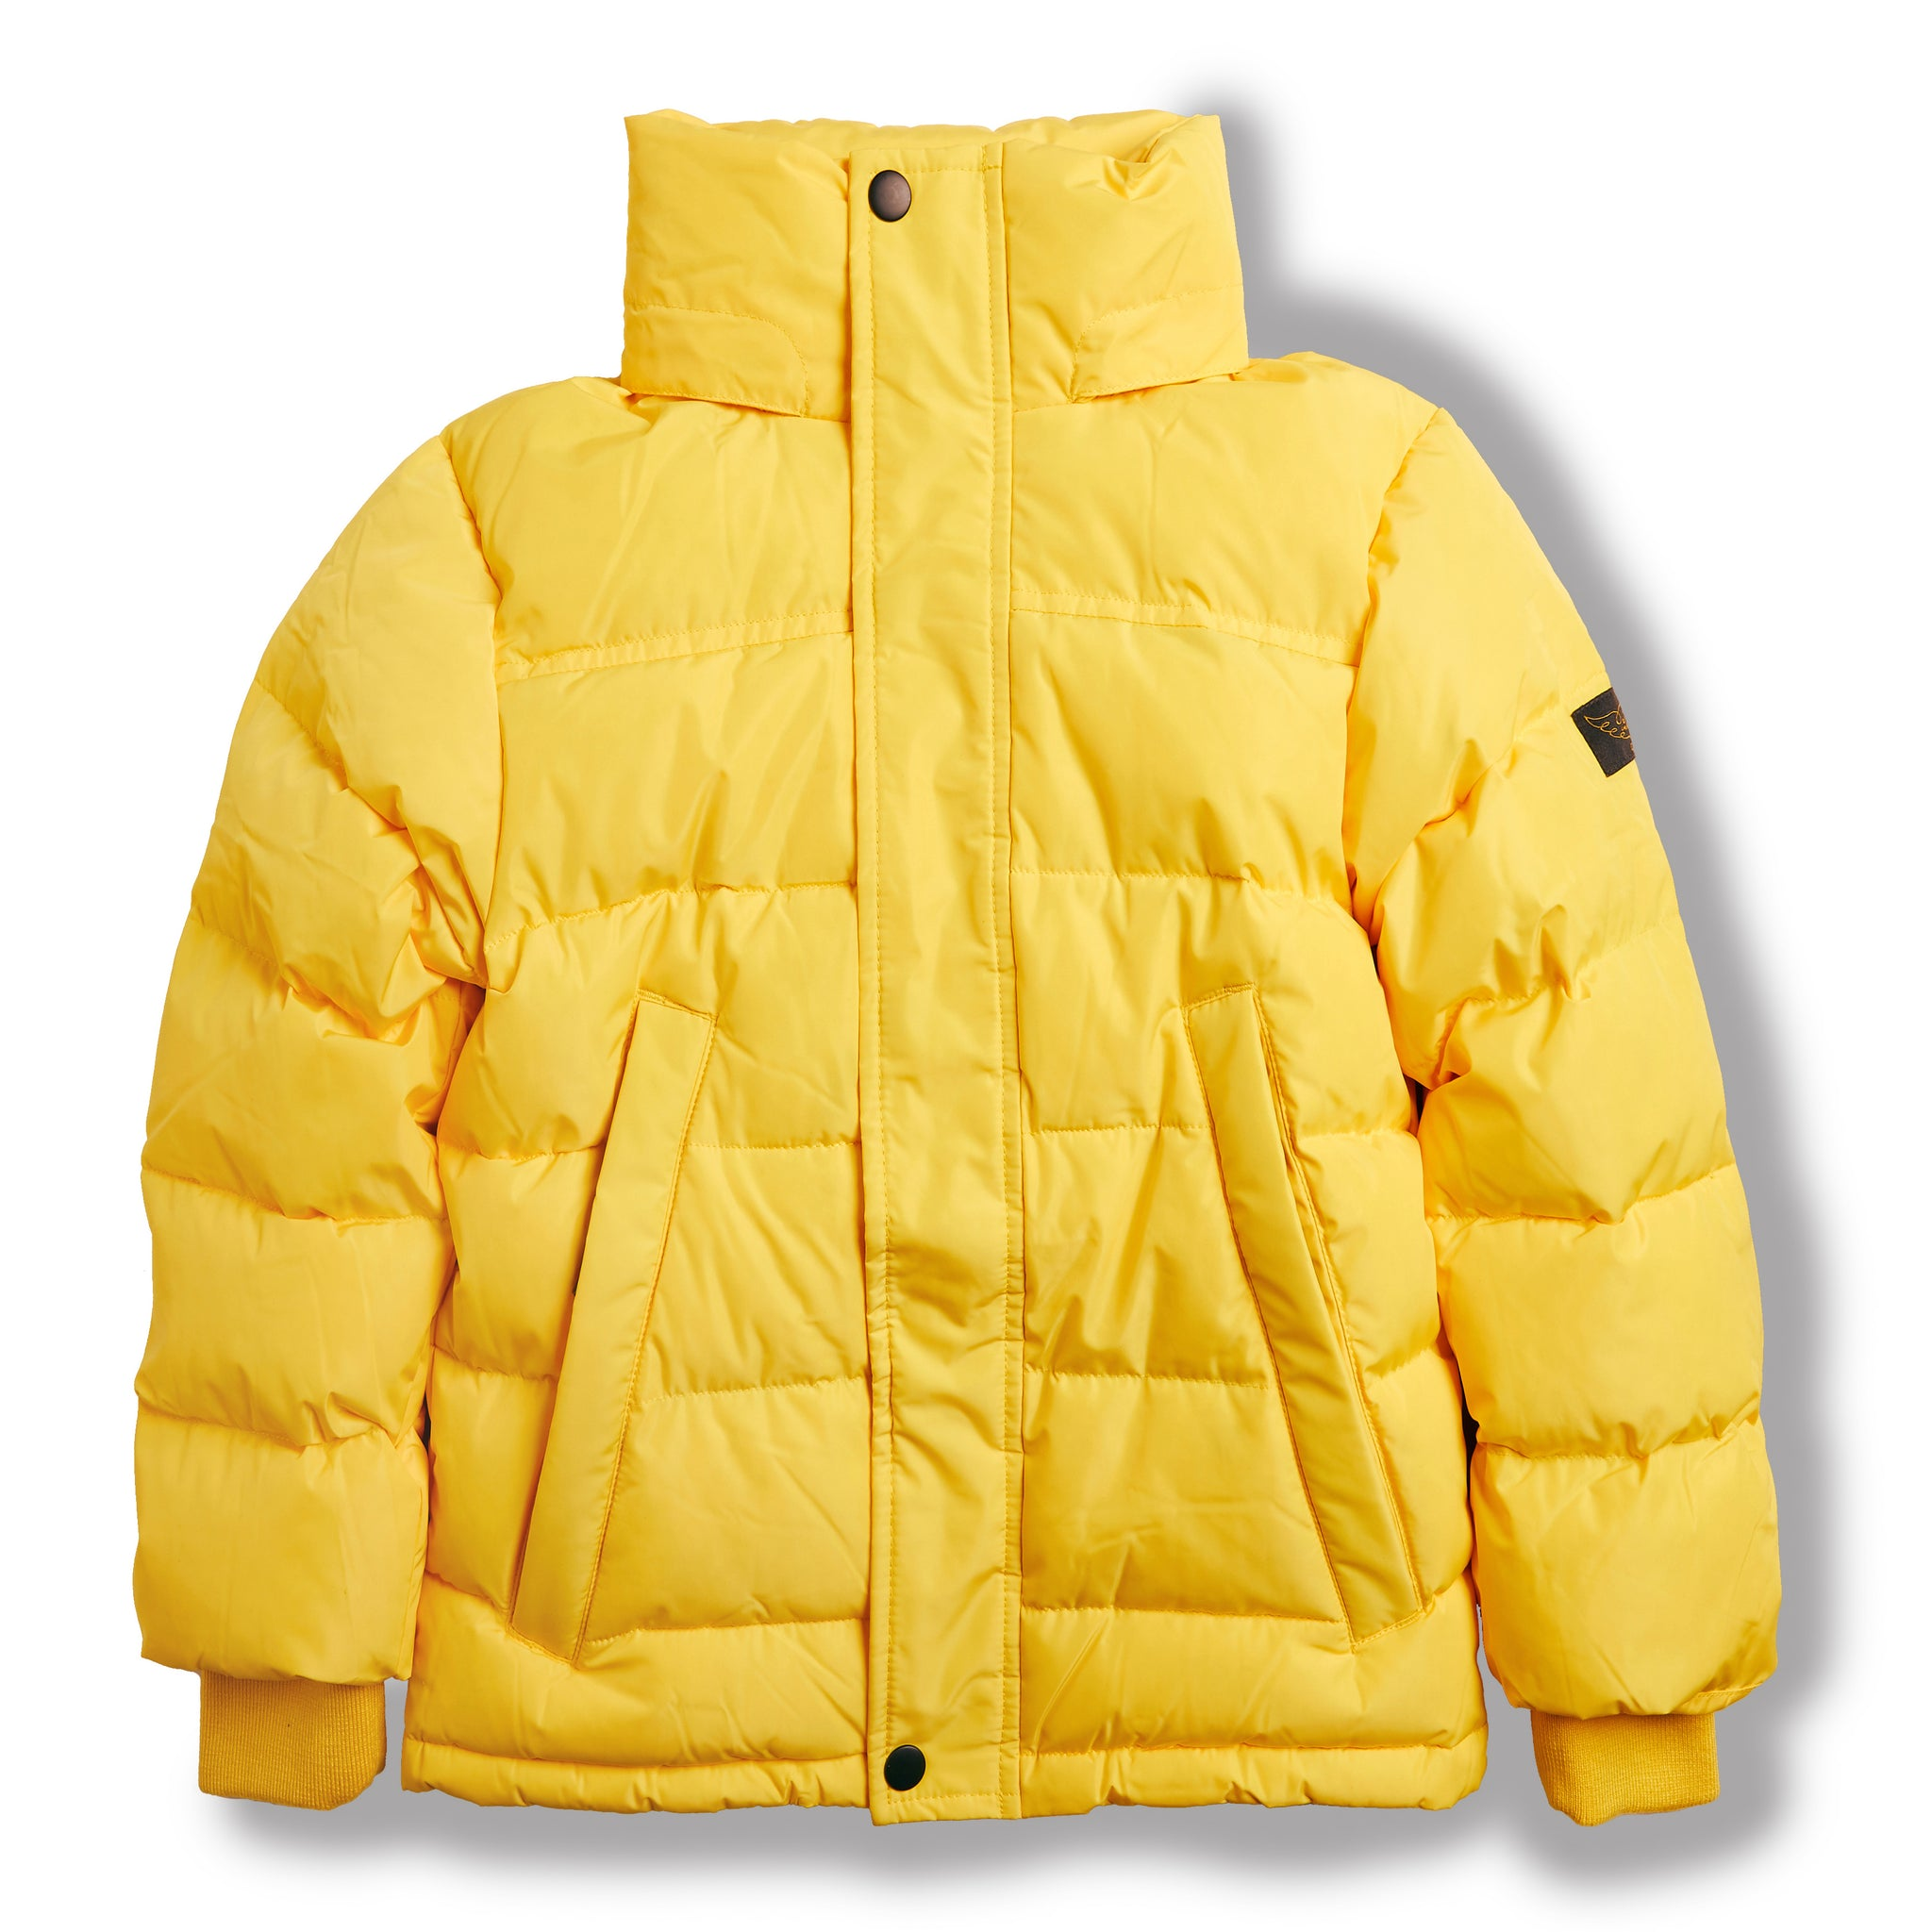 SNOWLYNX Yellow -  Woven Down Jacket